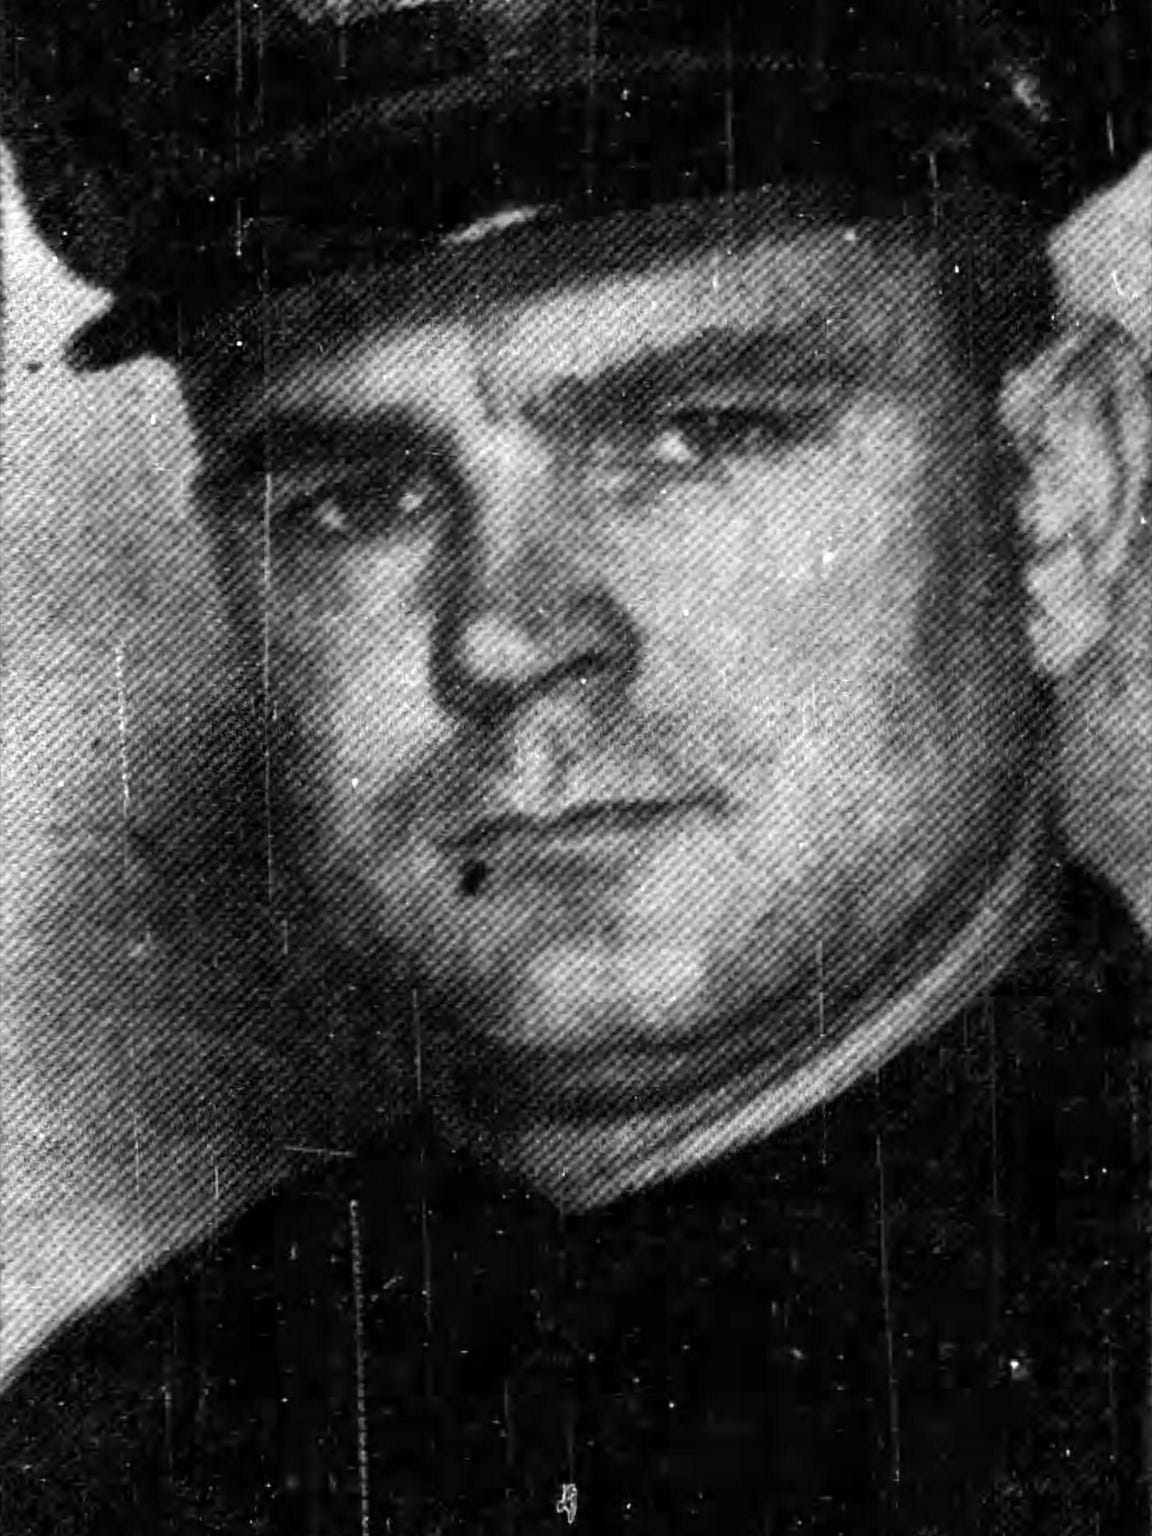 Indiana State Police officer Paul Minneman was gunned down on May 25, 1937, by members of the Brady gang.